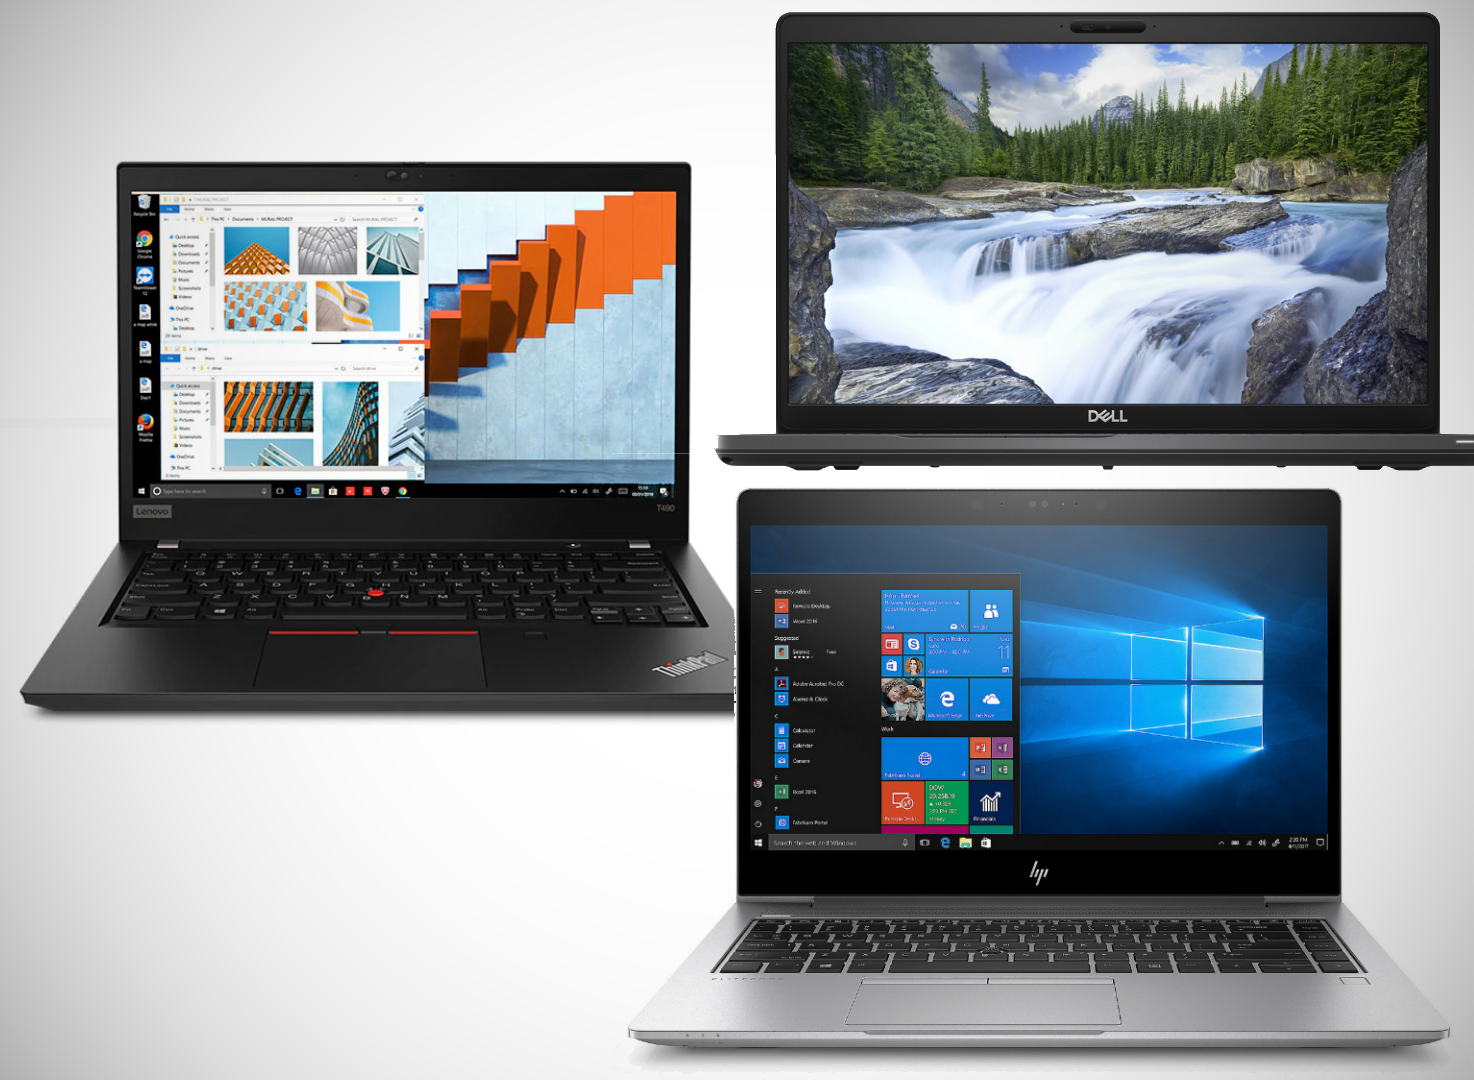 Are T Series Thinkpads Still King The Dell Vs Lenovo Vs Hp Business Laptop Showdown Notebookcheck Net News